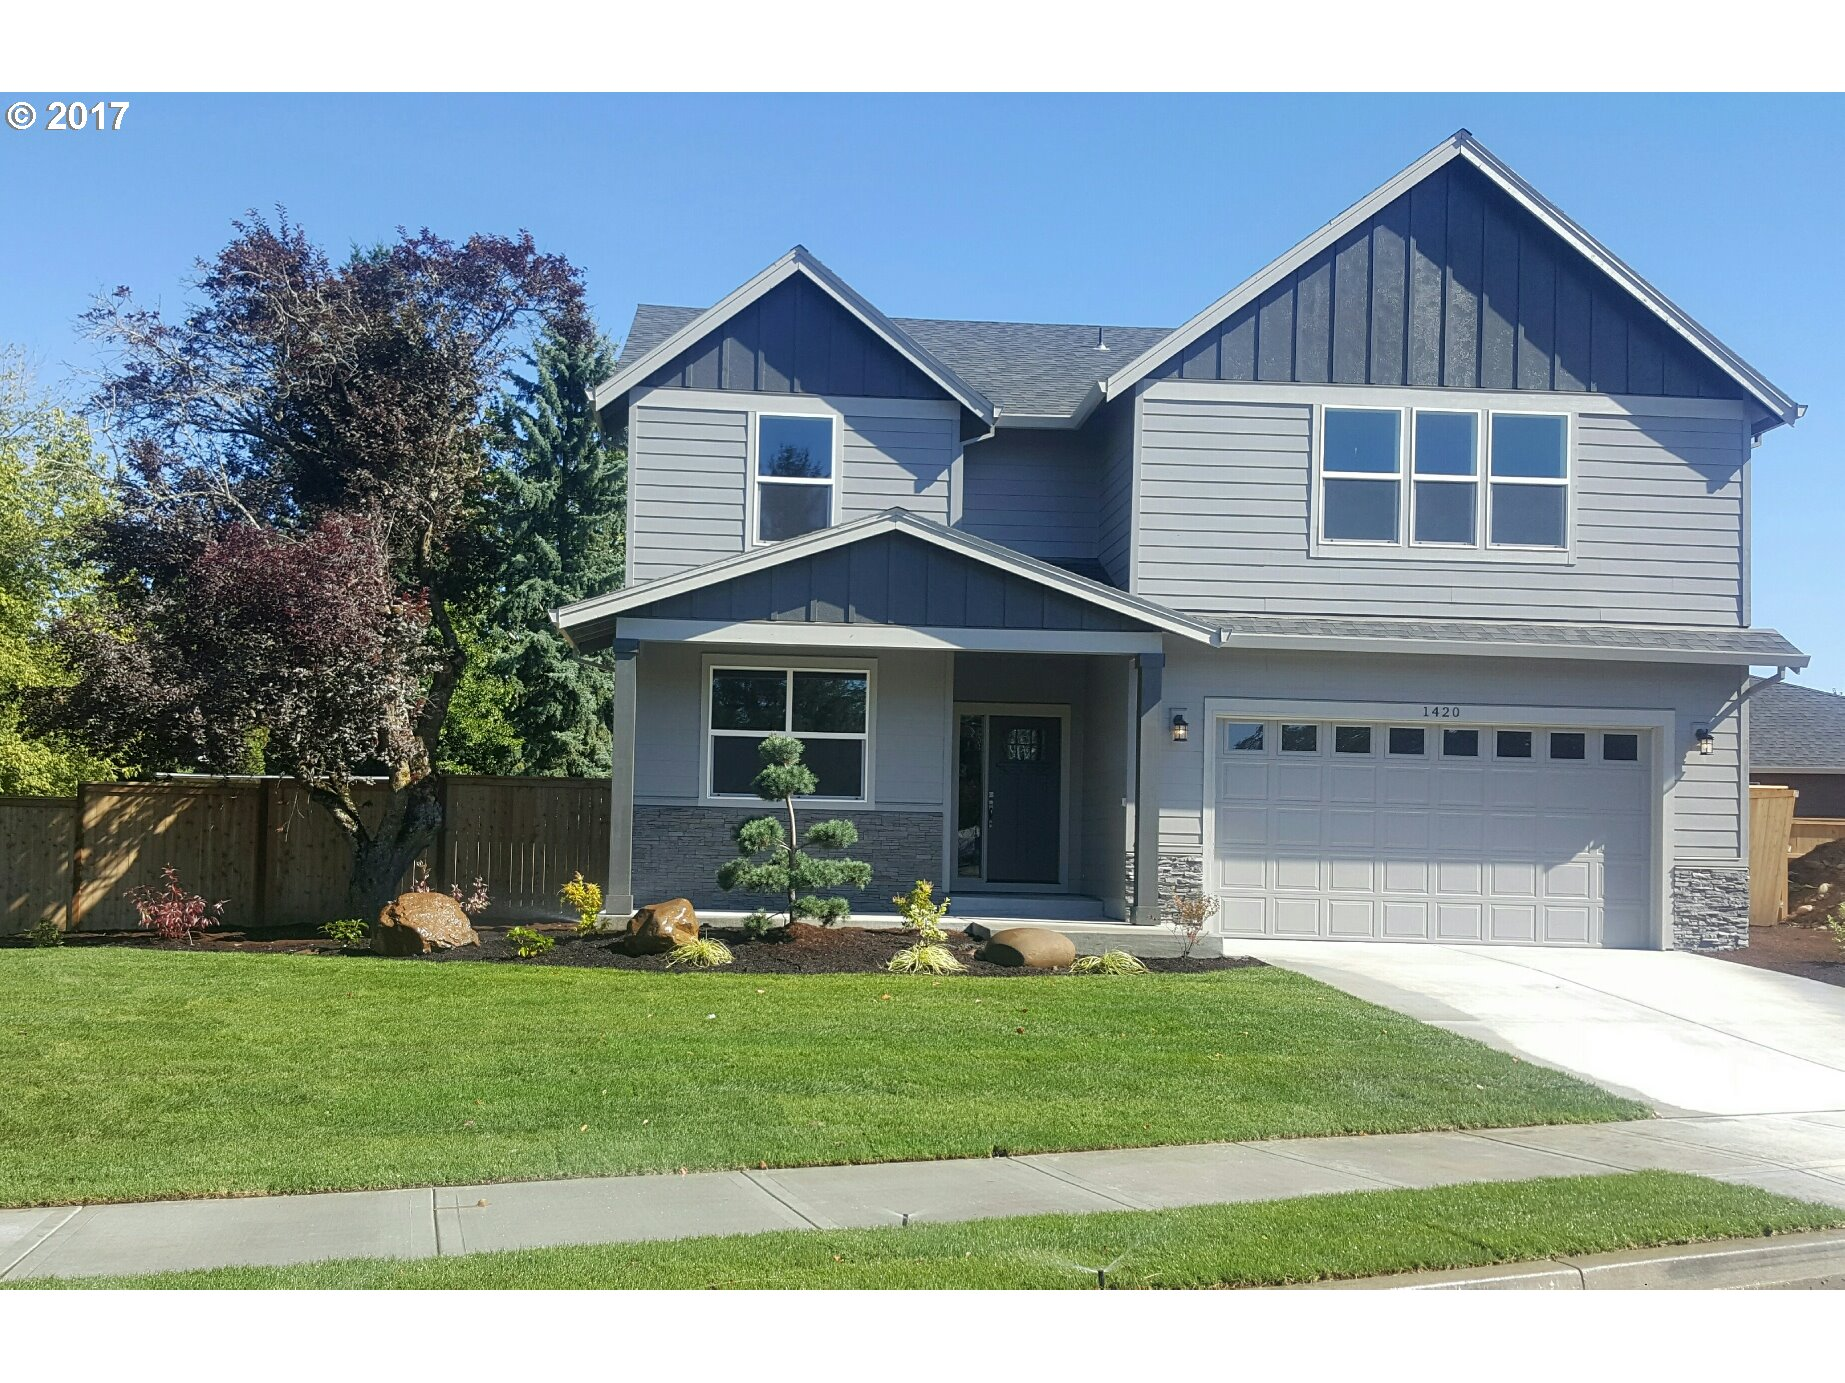 1420 Sw Wright Pl, Troutdale, OR 97060